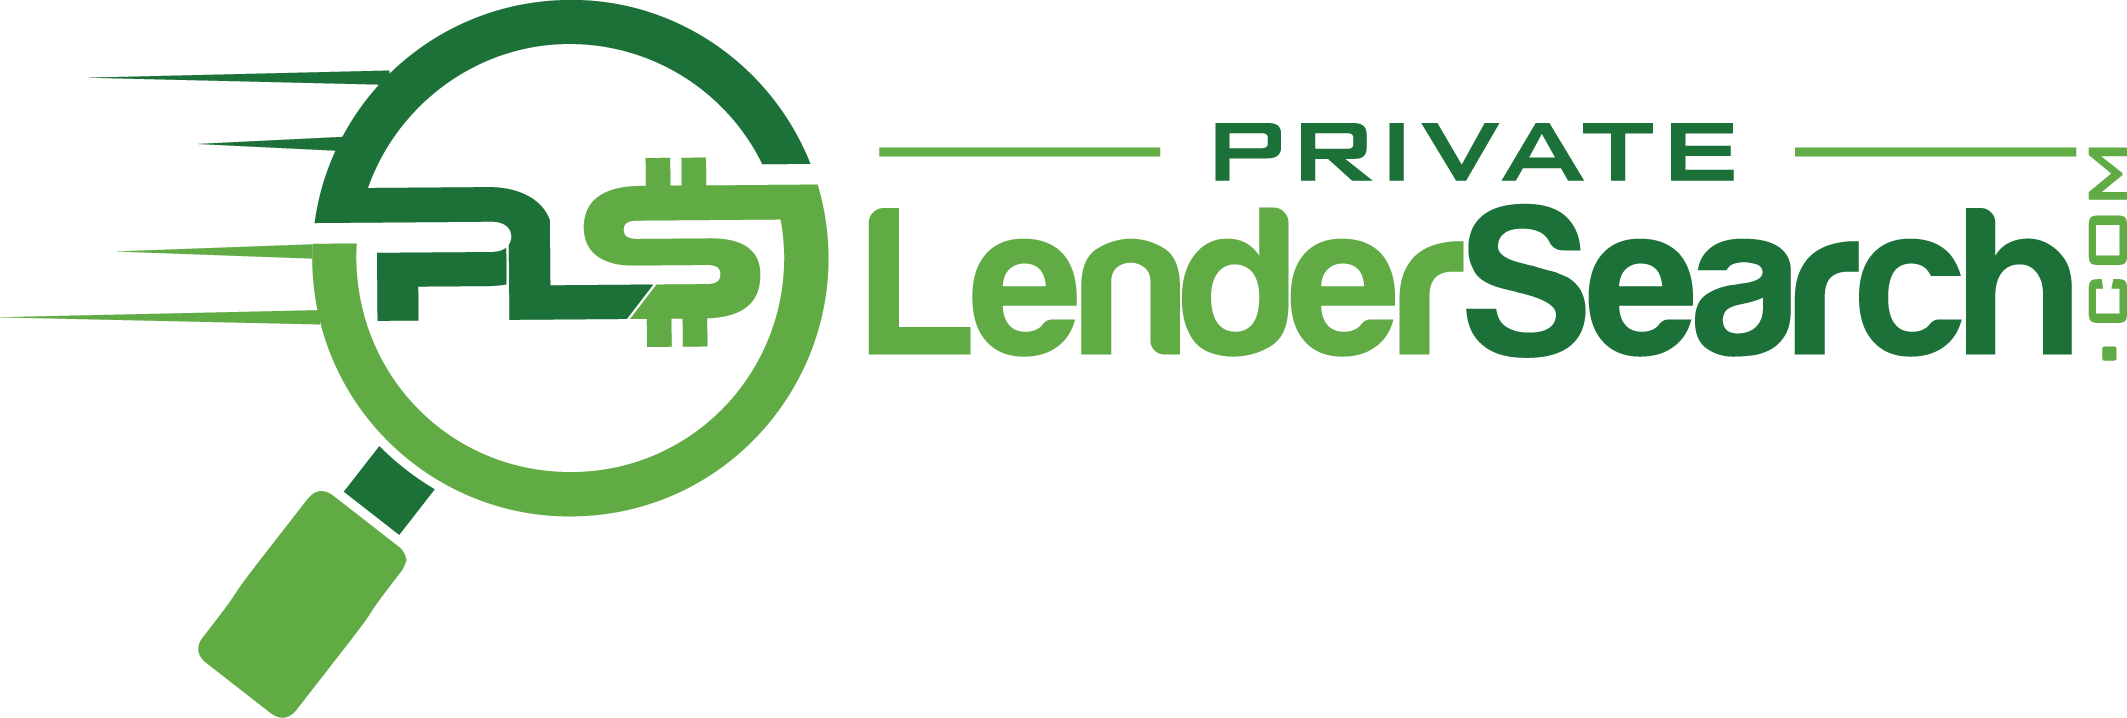 Private Lender Search - Private Lender Expo